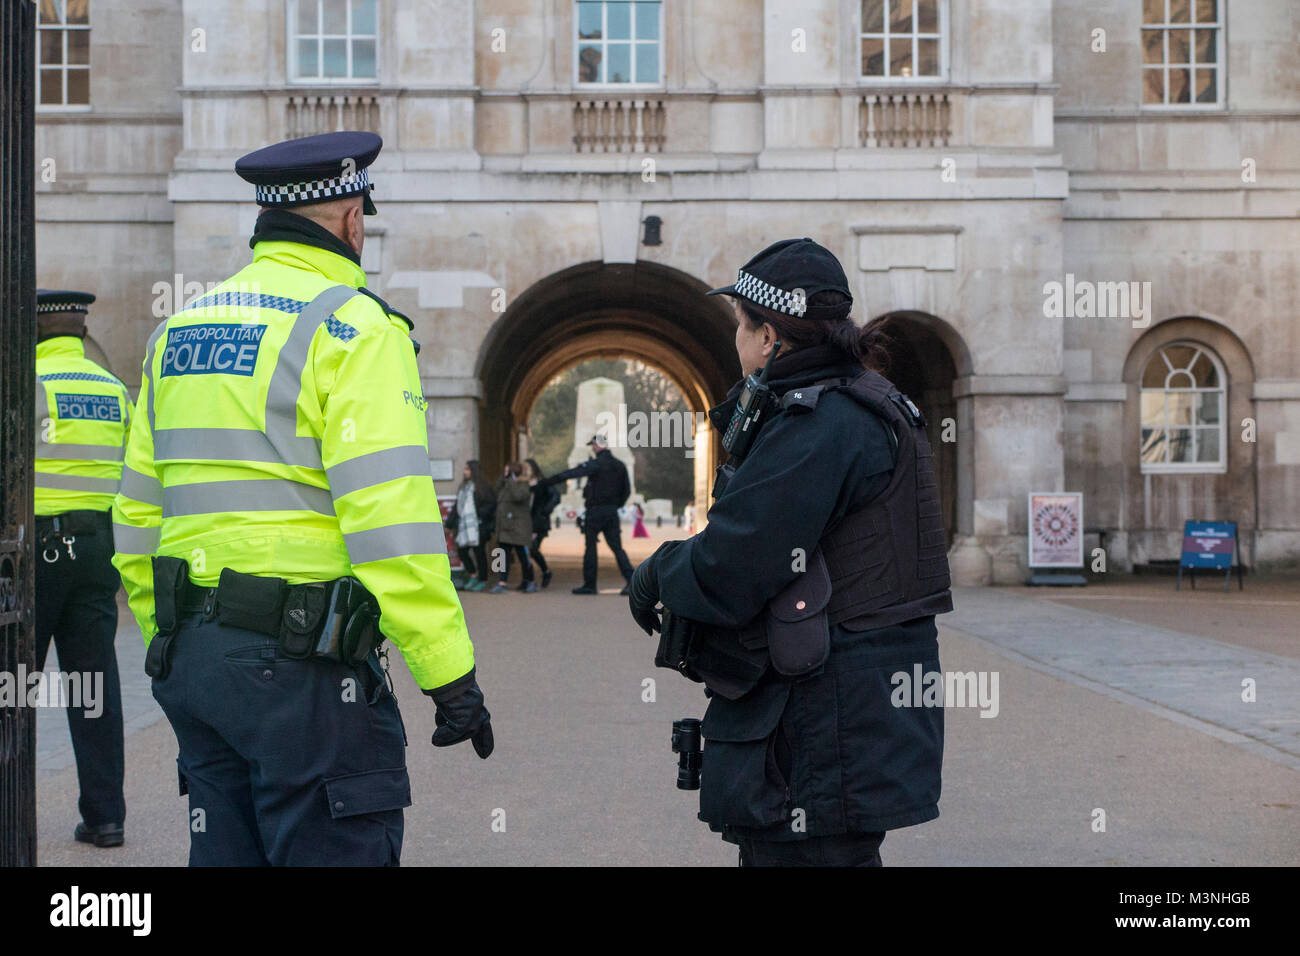 An armed police woman in London - Stock Image